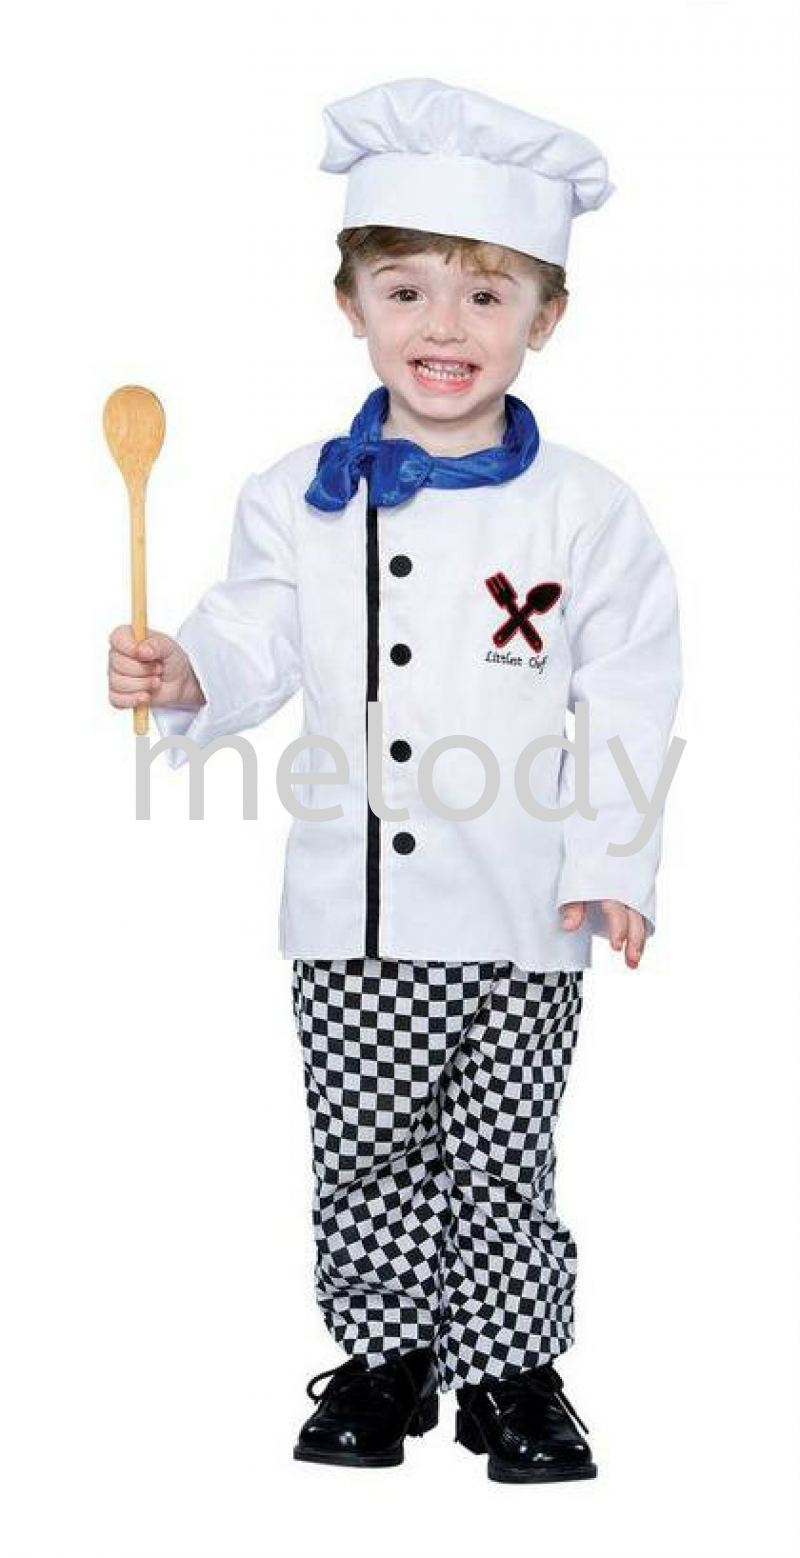 Little Chef kids costume